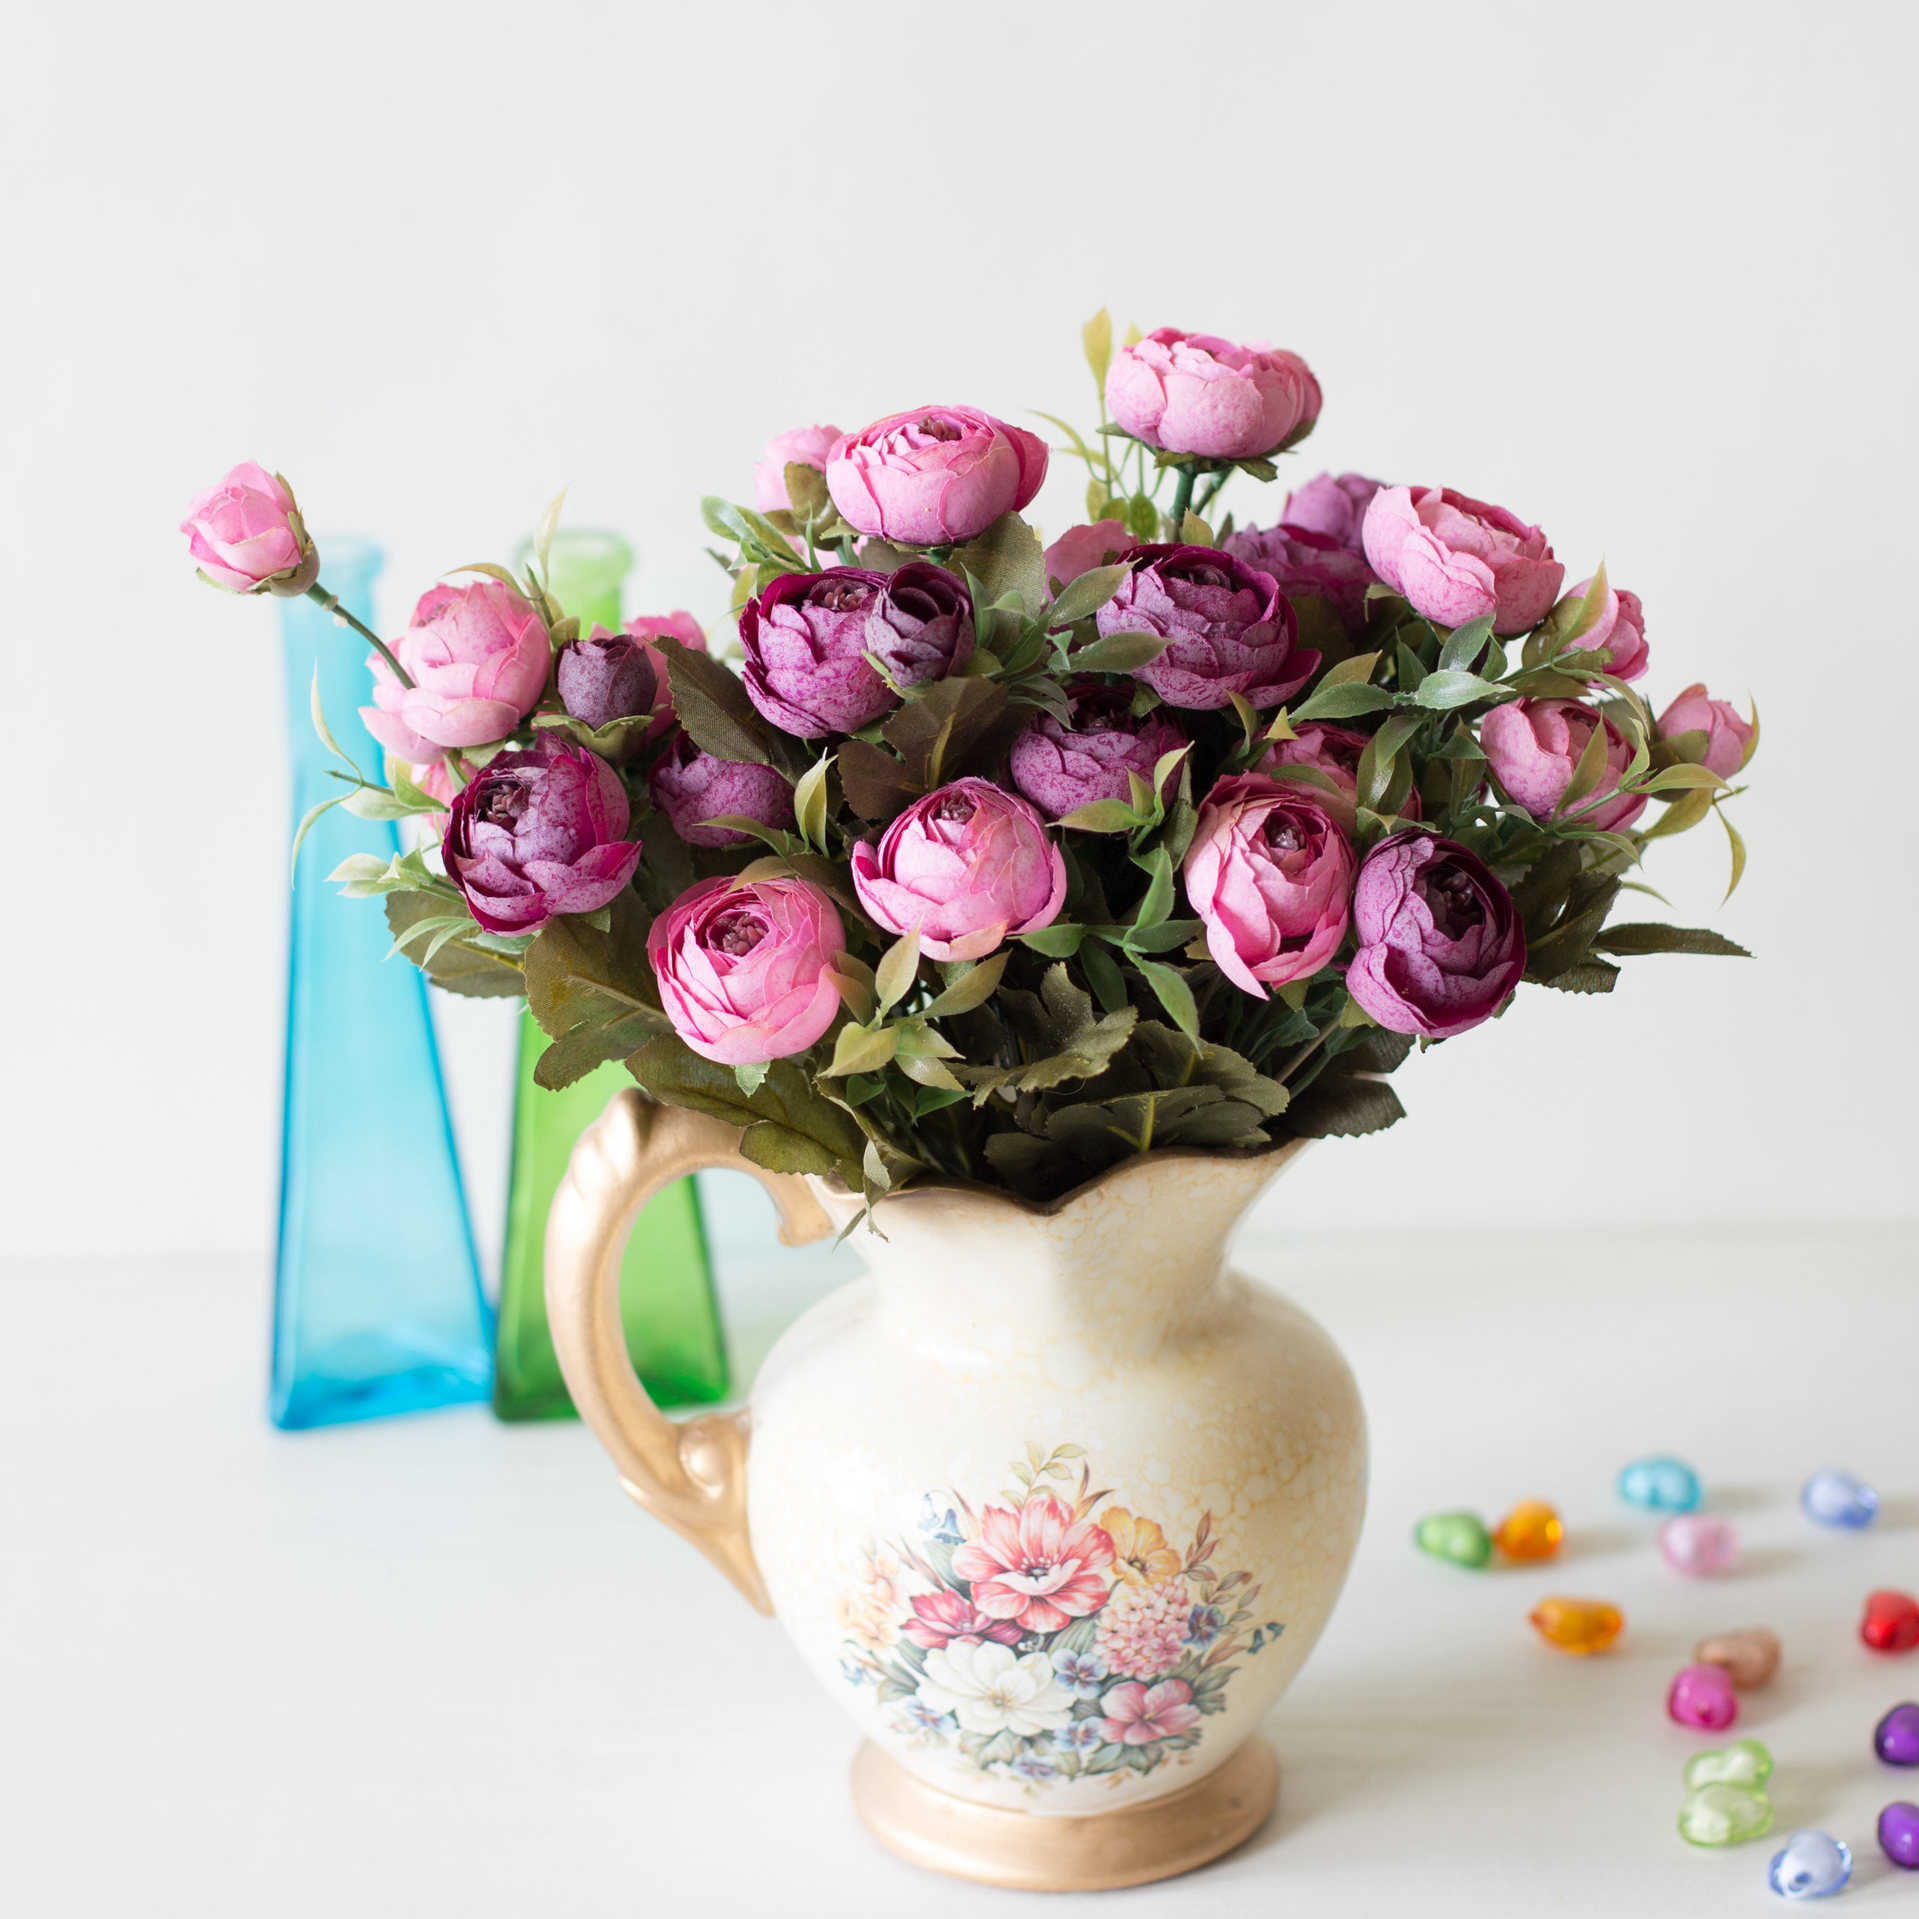 Image 5 - 9 Head/Bouquet Mini Fake Tea Rose Peony Flowers For Home Wedding Decor Artificial Rose Penoy Flower Bouquet Bud For Room Decor-in Artificial & Dried Flowers from Home & Garden